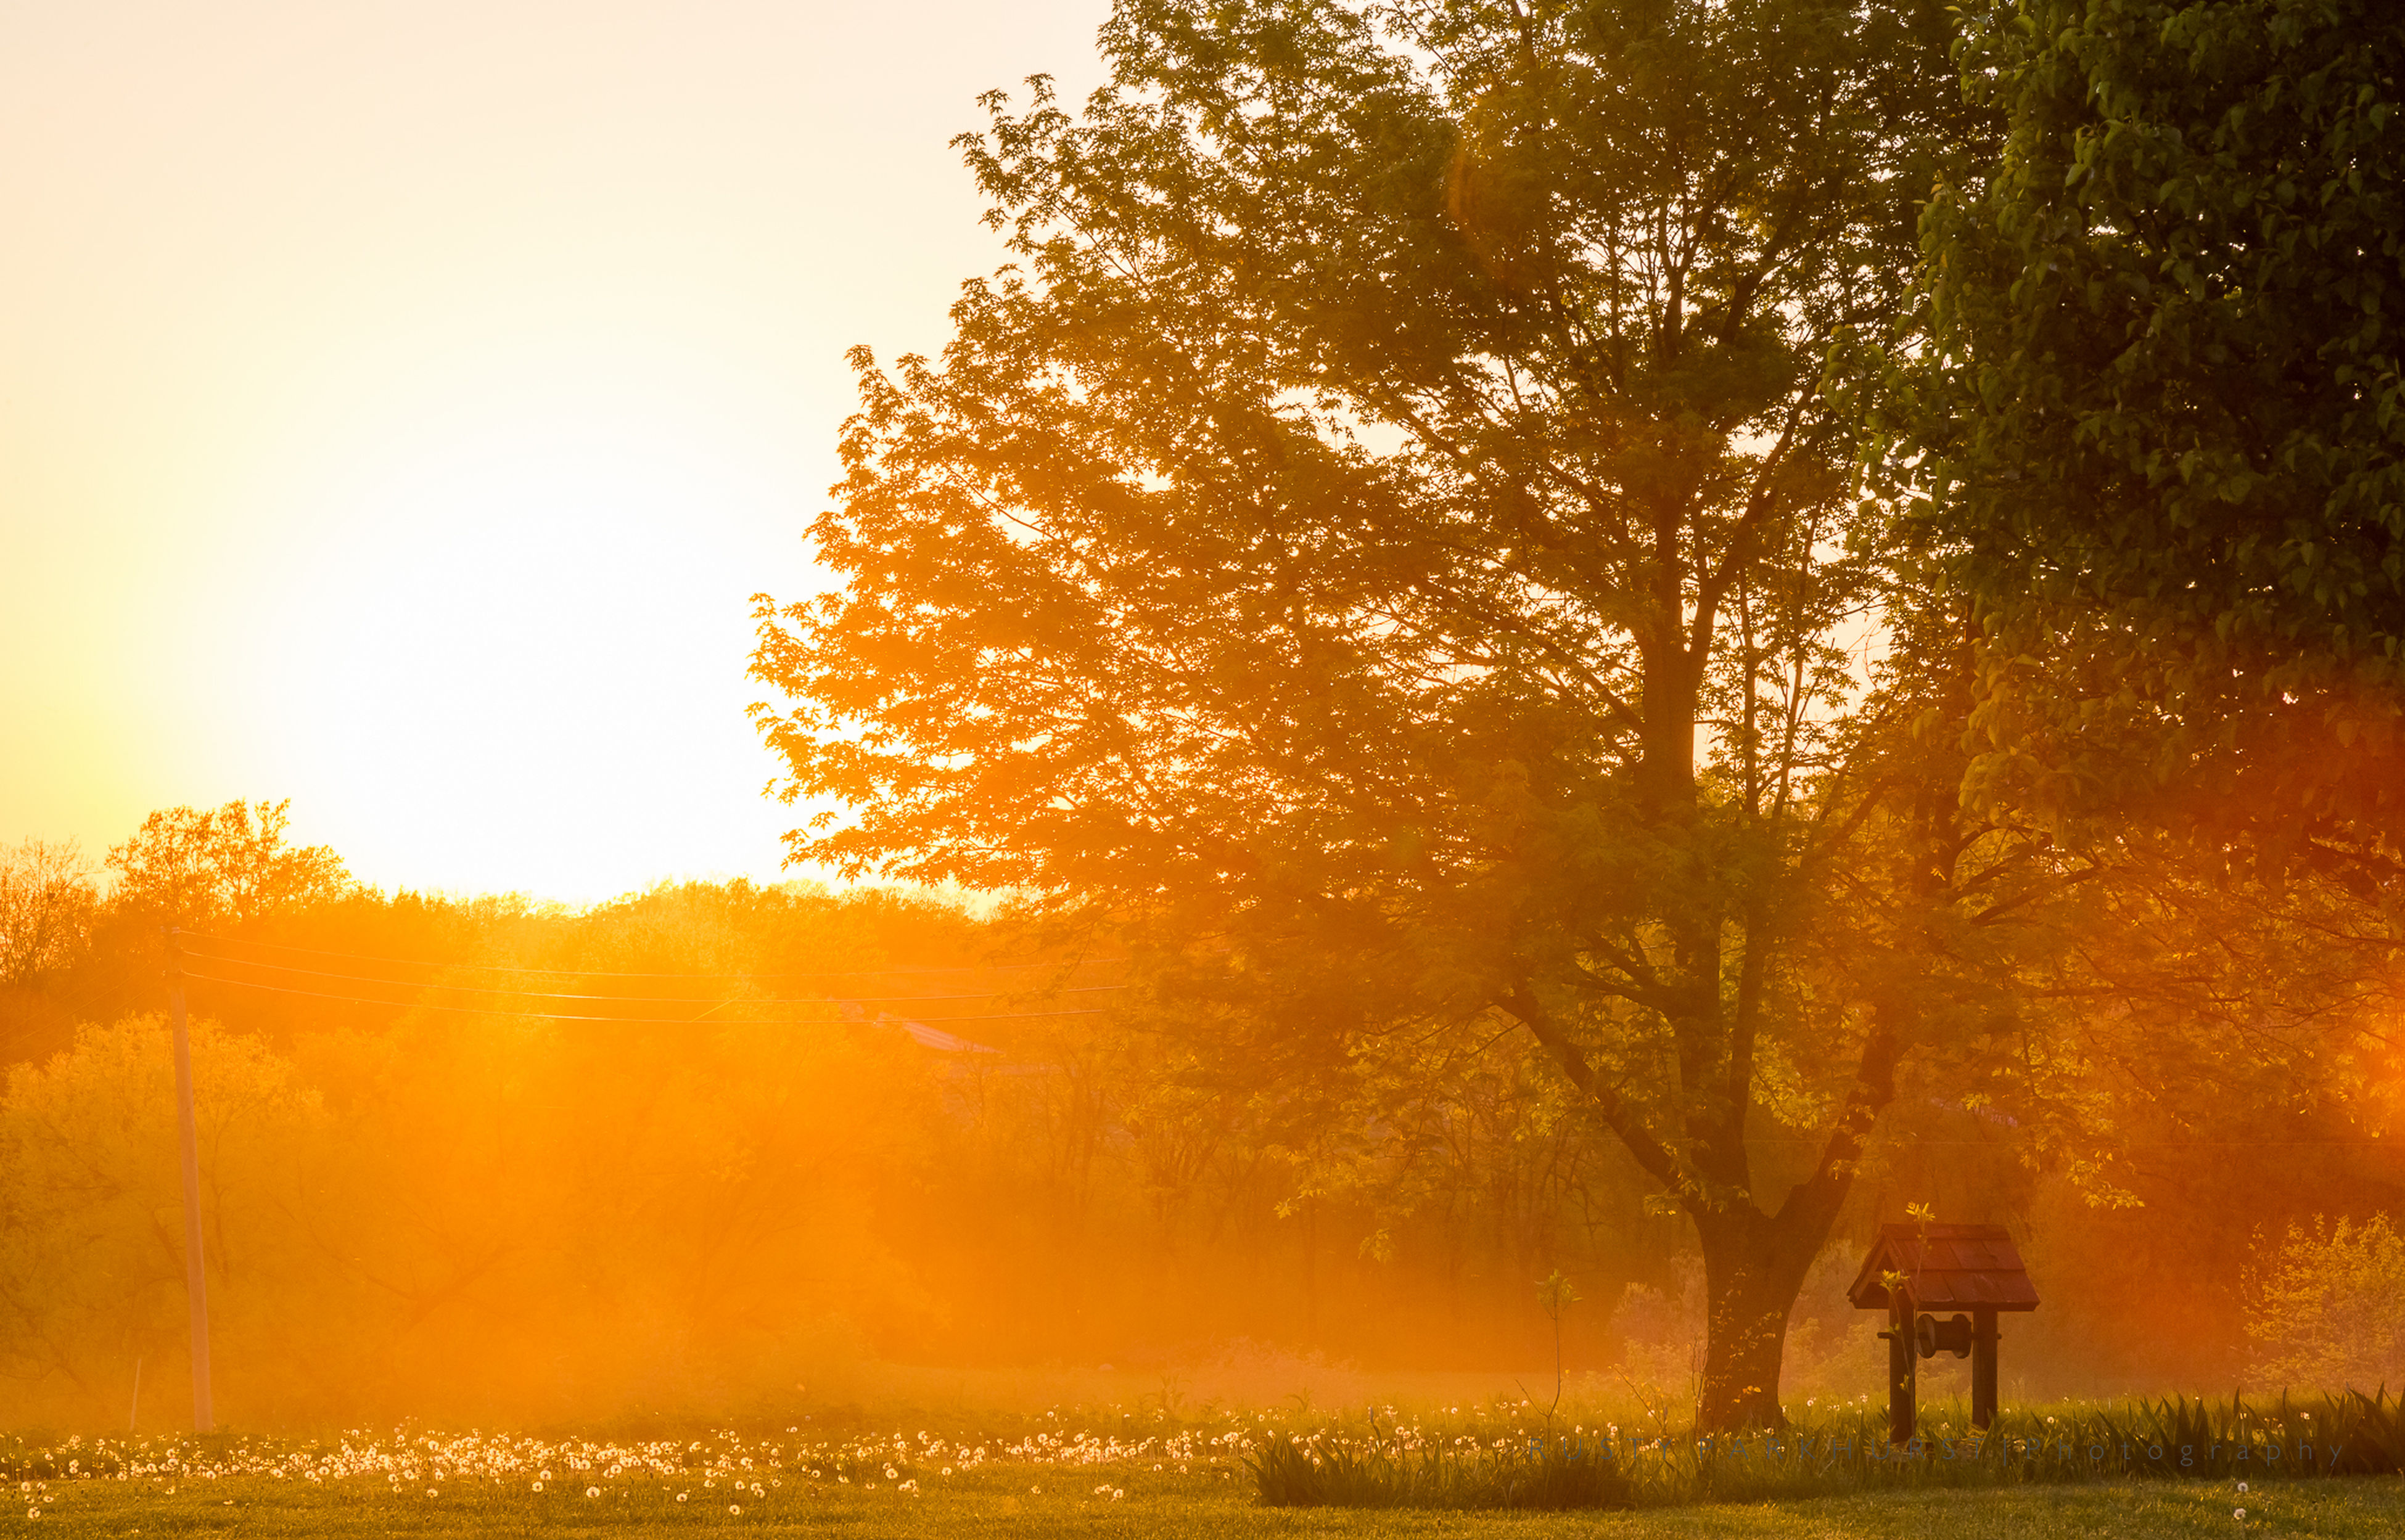 tree, sun, sunset, growth, beauty in nature, tranquility, orange color, sunlight, nature, tranquil scene, scenics, sunbeam, autumn, lens flare, yellow, landscape, field, change, season, idyllic, outdoors, sky, back lit, non-urban scene, tree trunk, no people, bright, growing, travel destinations, day, remote, park, tourism, sunny